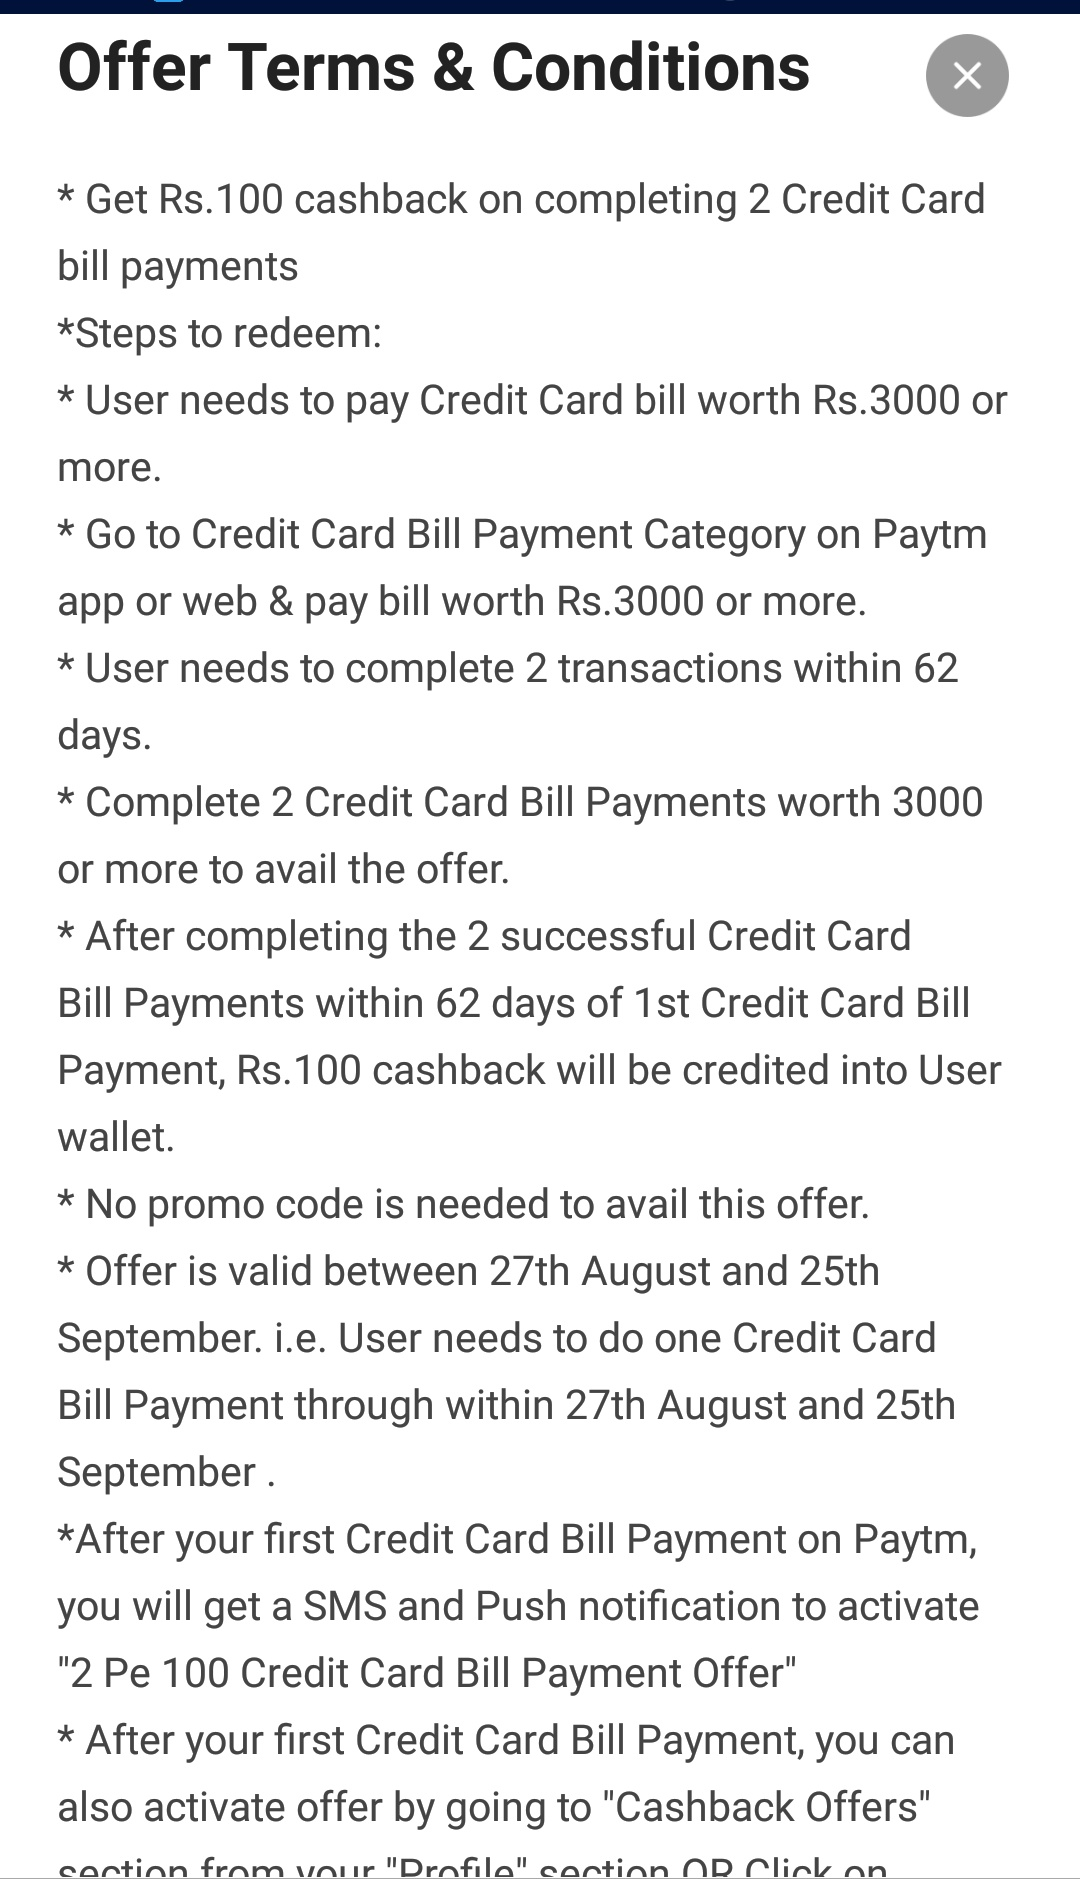 https://cdn0.desidime.com/attachments/photos/528380/original/Screenshot_2018-08-27-11-26-02-576_net.one97.paytm.png?1535349434